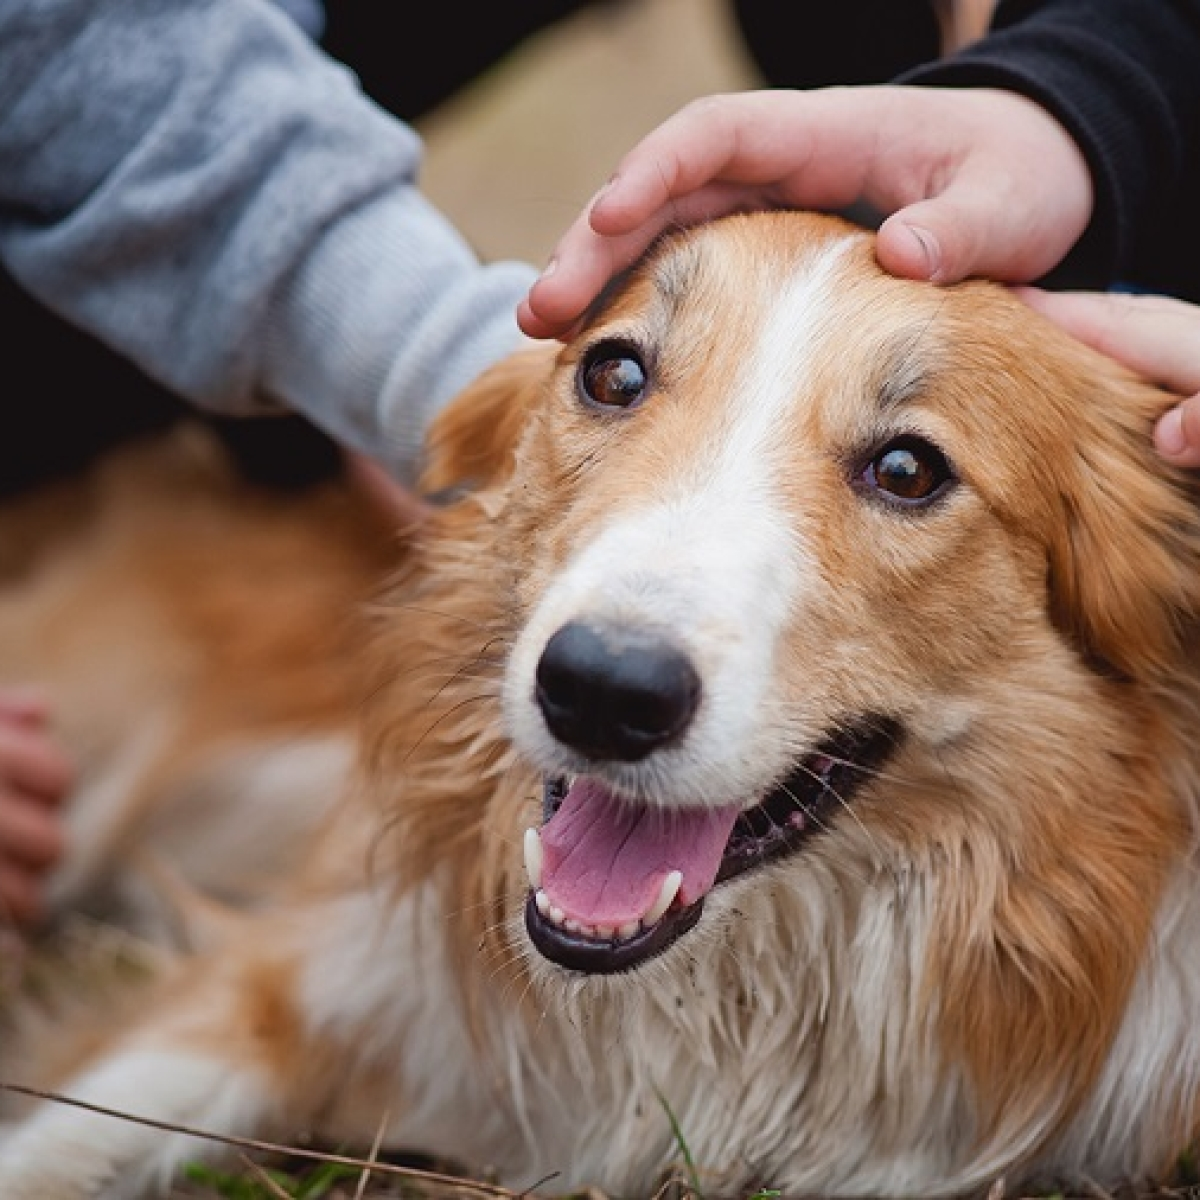 Pets may relieve stress for parents of kids with autism: Study